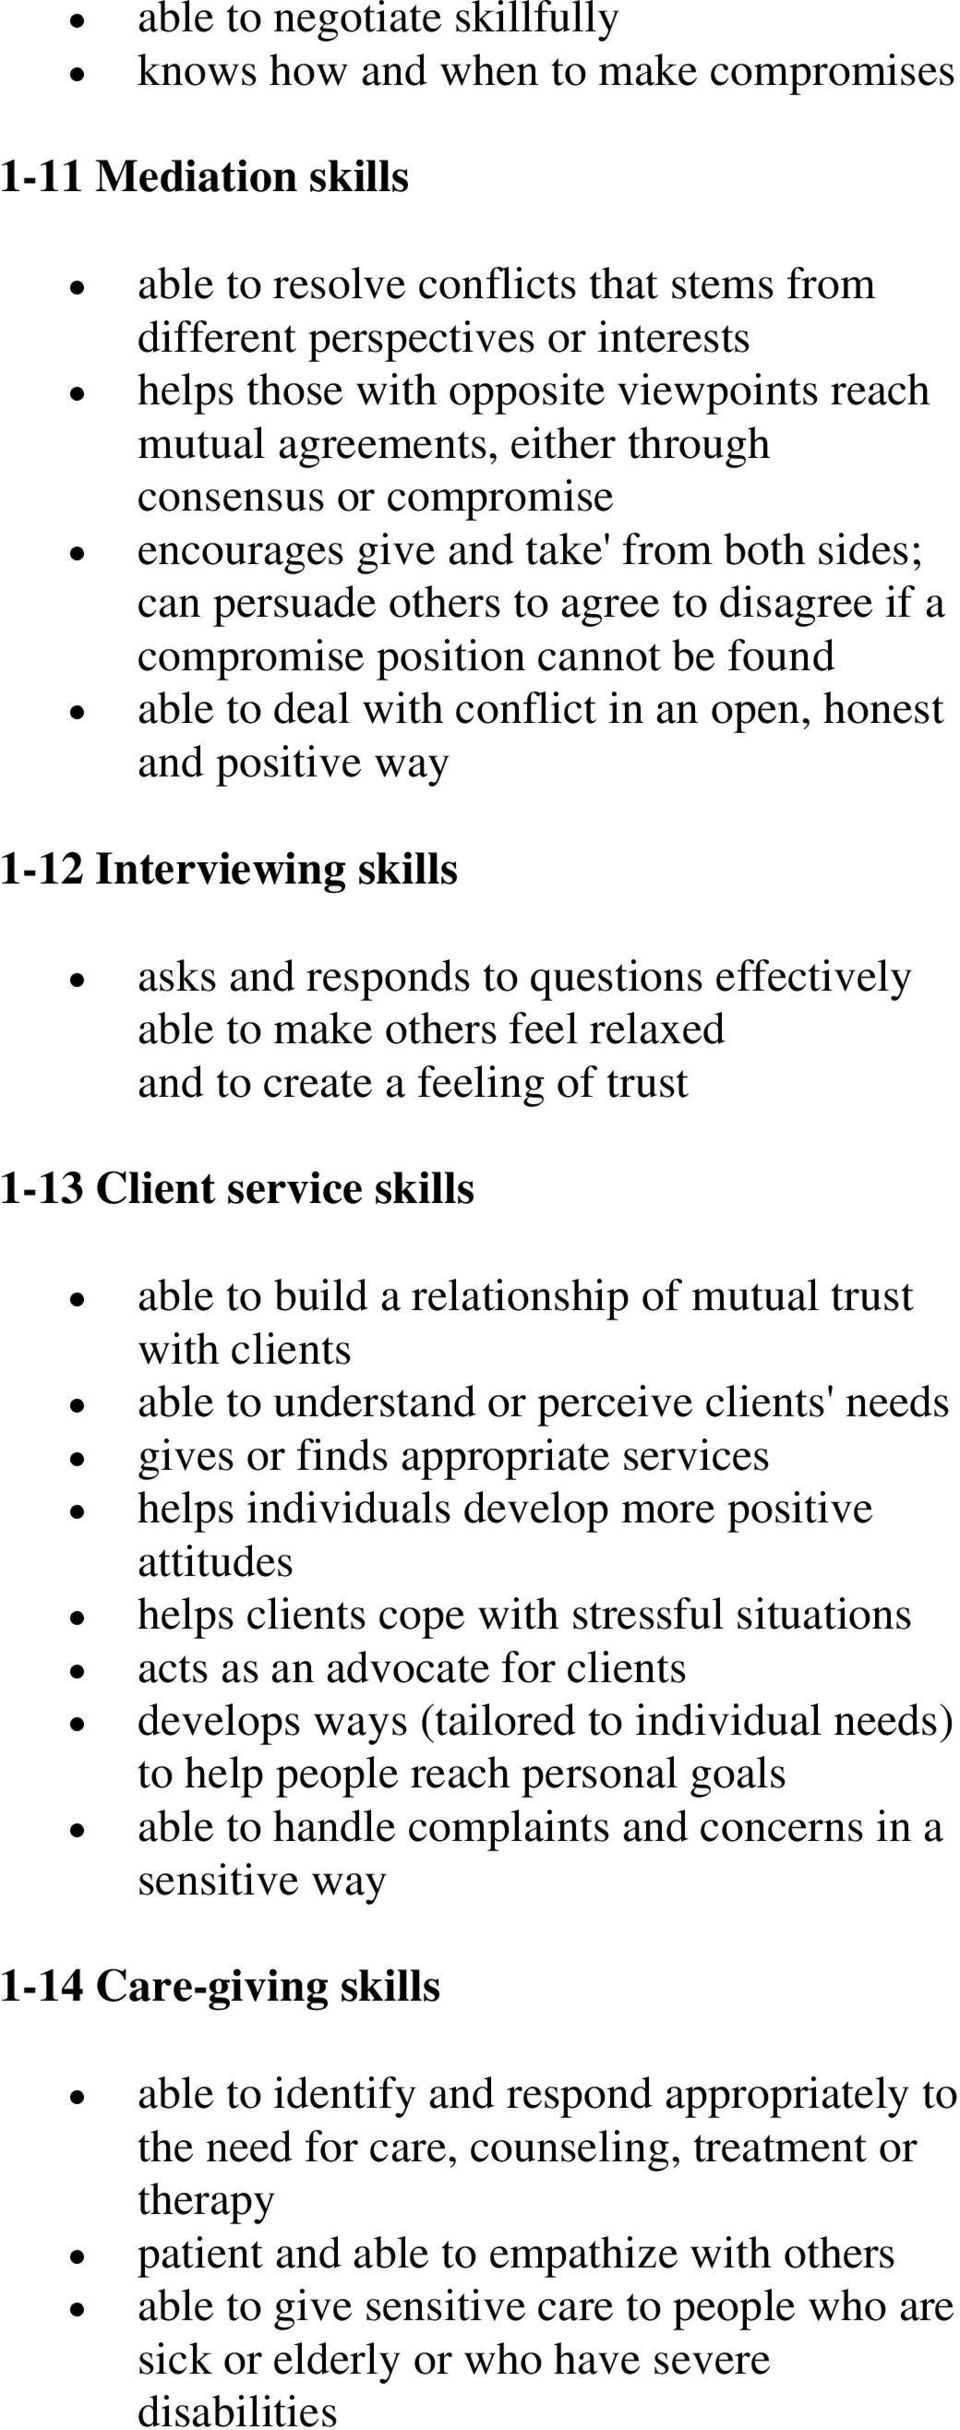 able to deal with conflict in an open, honest and positive way 1-12 Interviewing skills asks and responds to questions effectively able to make others feel relaxed and to create a feeling of trust